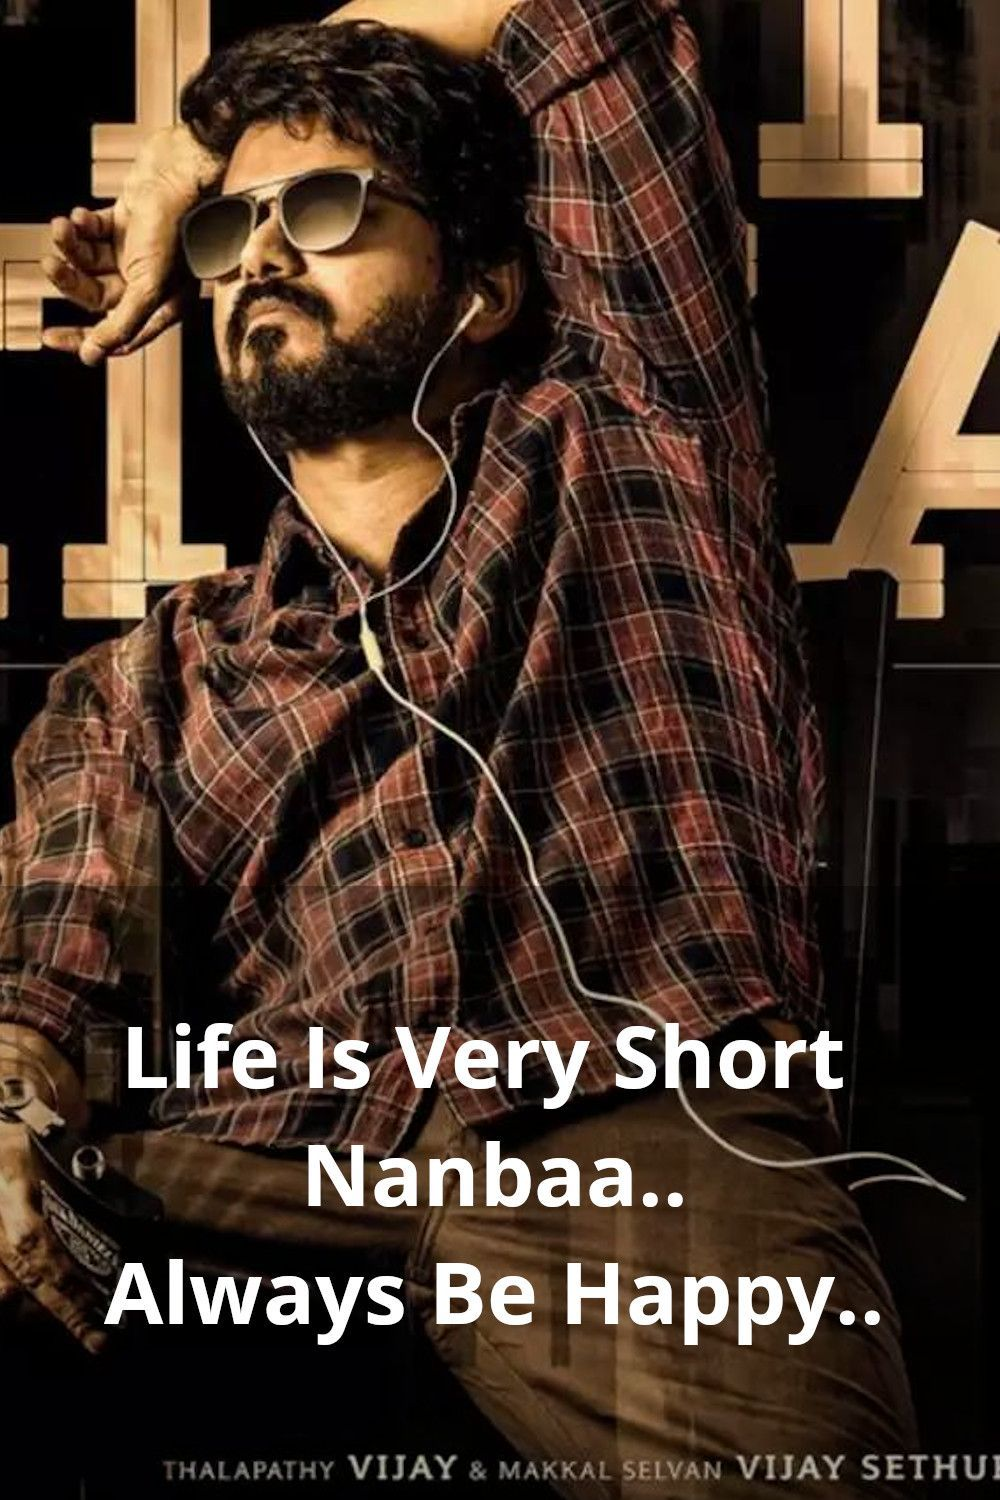 Master Kutti Story Song Check Out Oru Kutti Kathai Song Lyrics From Thalapathy Vijay Starring Master Mov Actor Quotes Movie Love Quotes Tamil Songs Lyrics